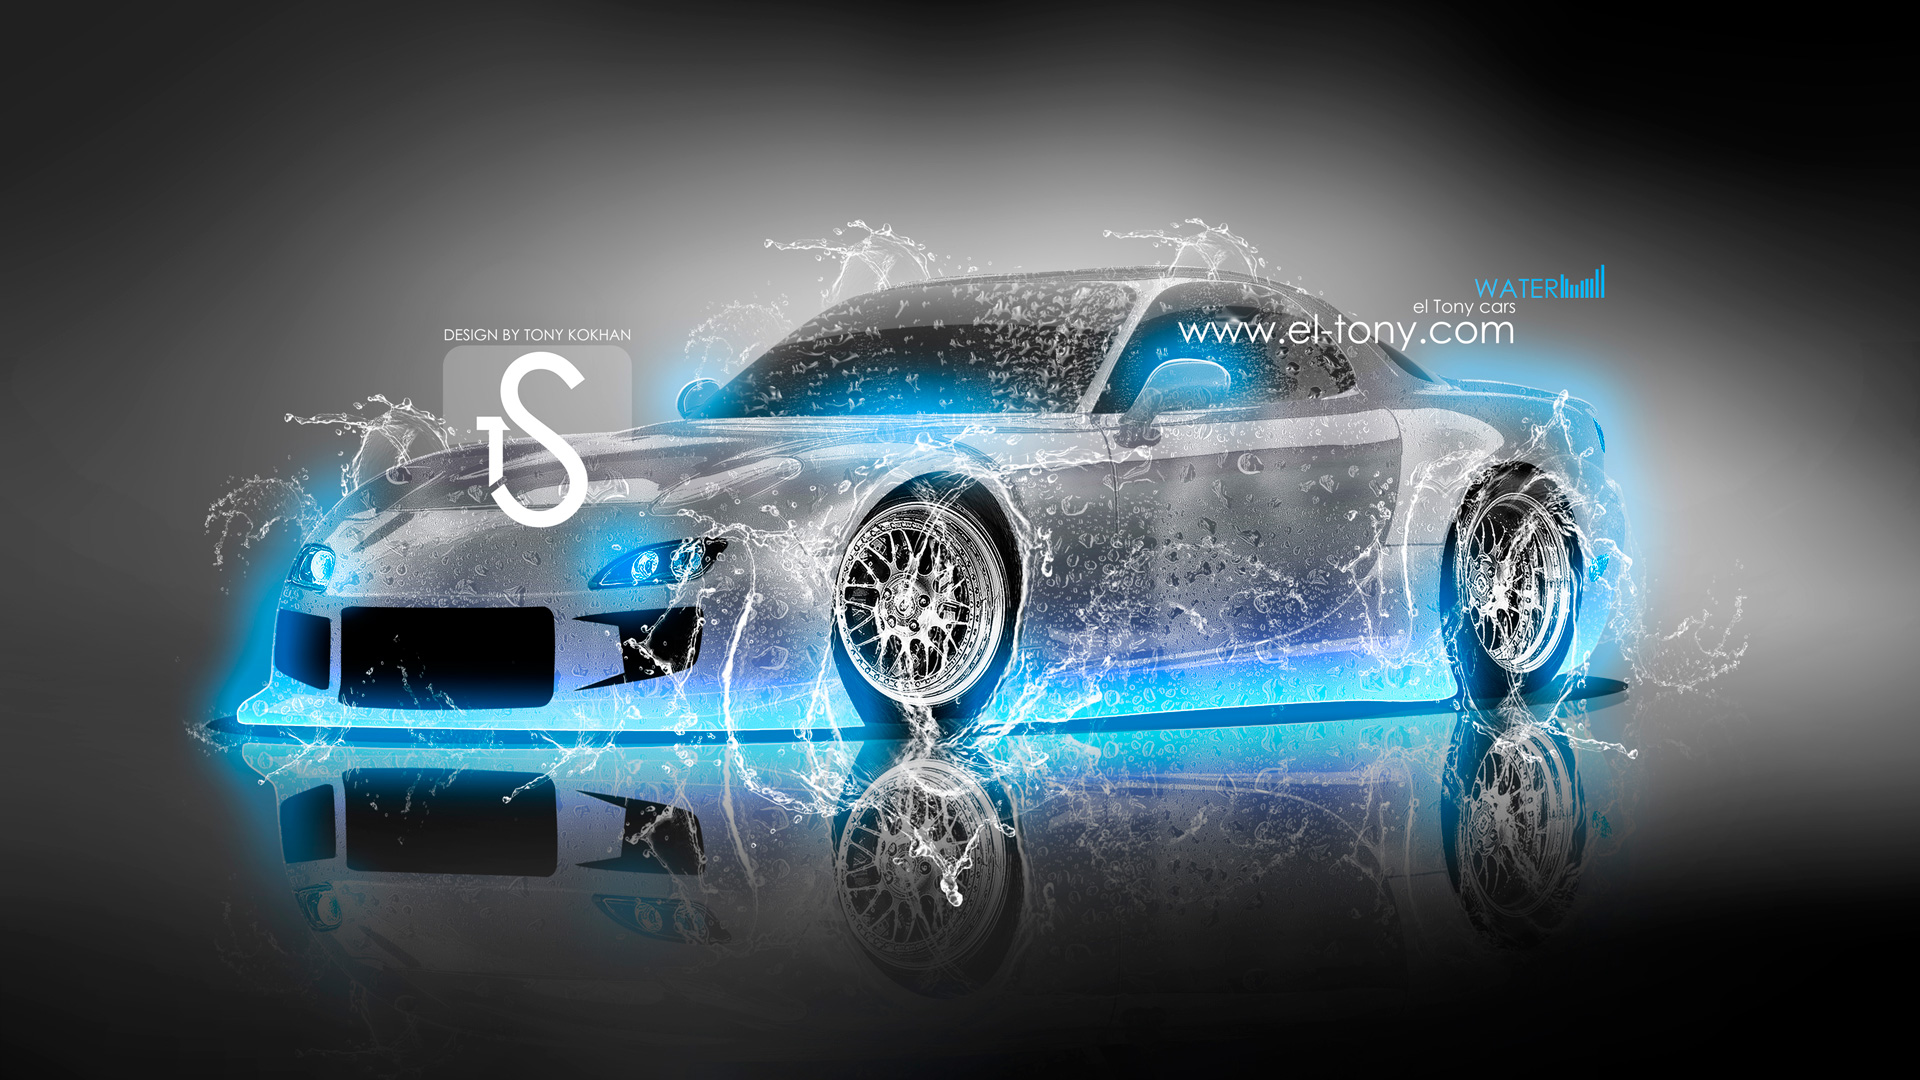 Mazda Rx7 Jdm Water Car Blue Neon 2013 Hd Wallpapers By Tony Kokhan 2014 Charger Wiring Diagram El Tonycom 19201080 Card From User Tonykokhan